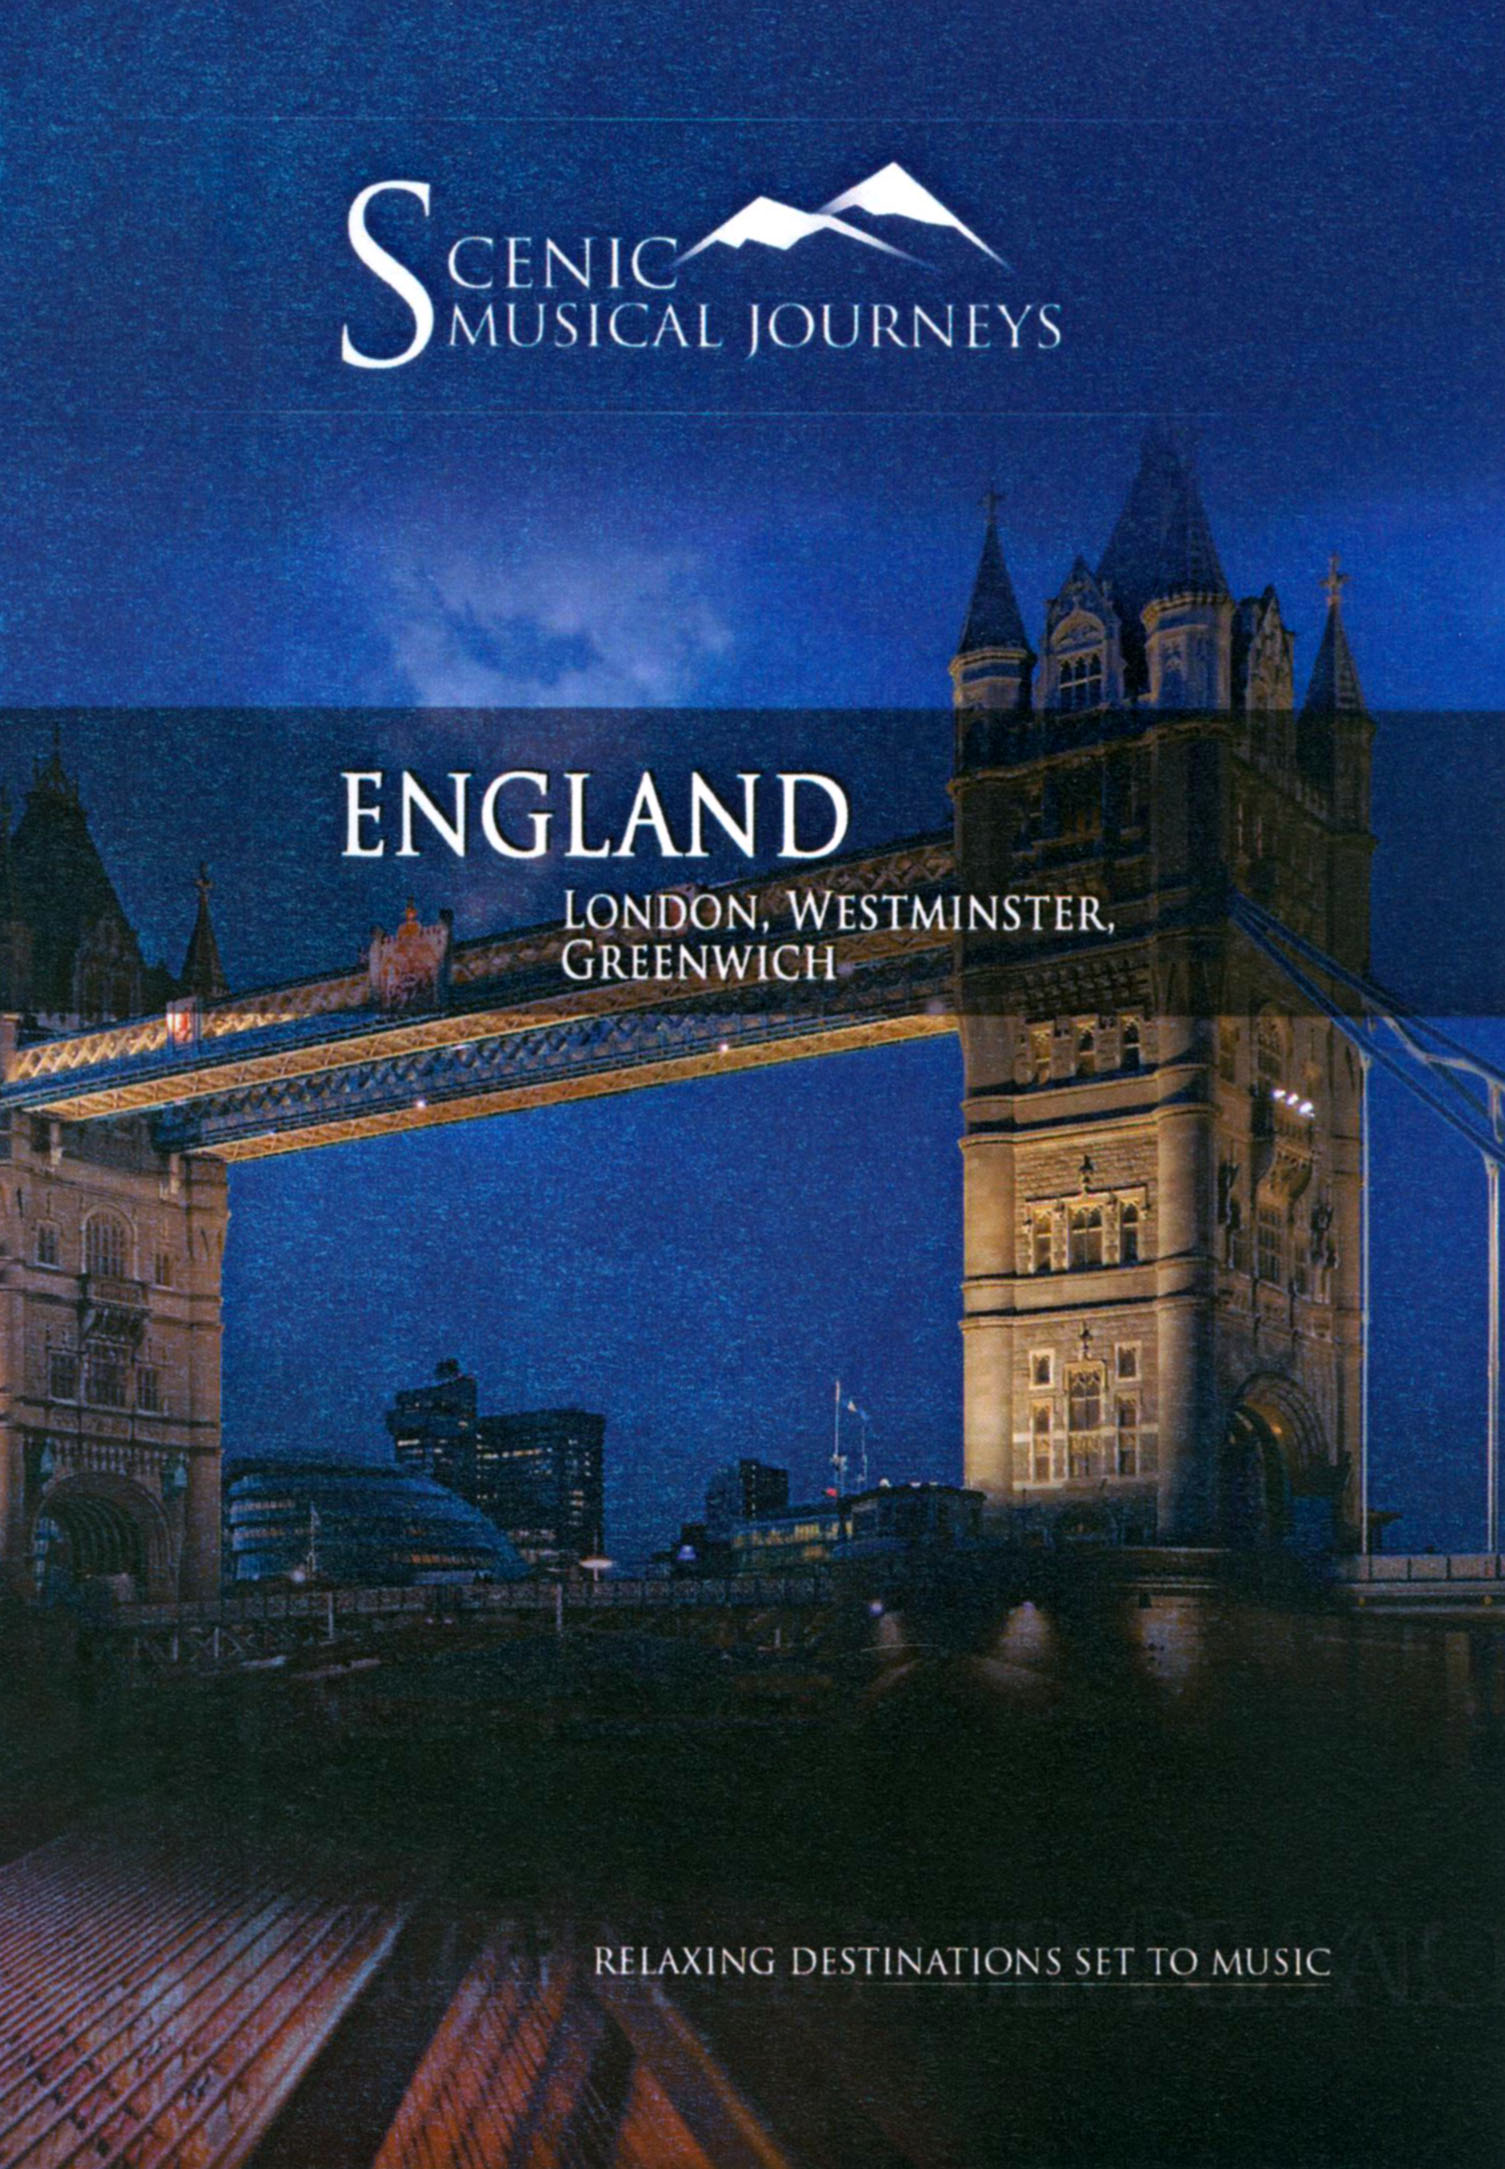 Scenic Musical Journeys: England - London, Westminster, Greenwich